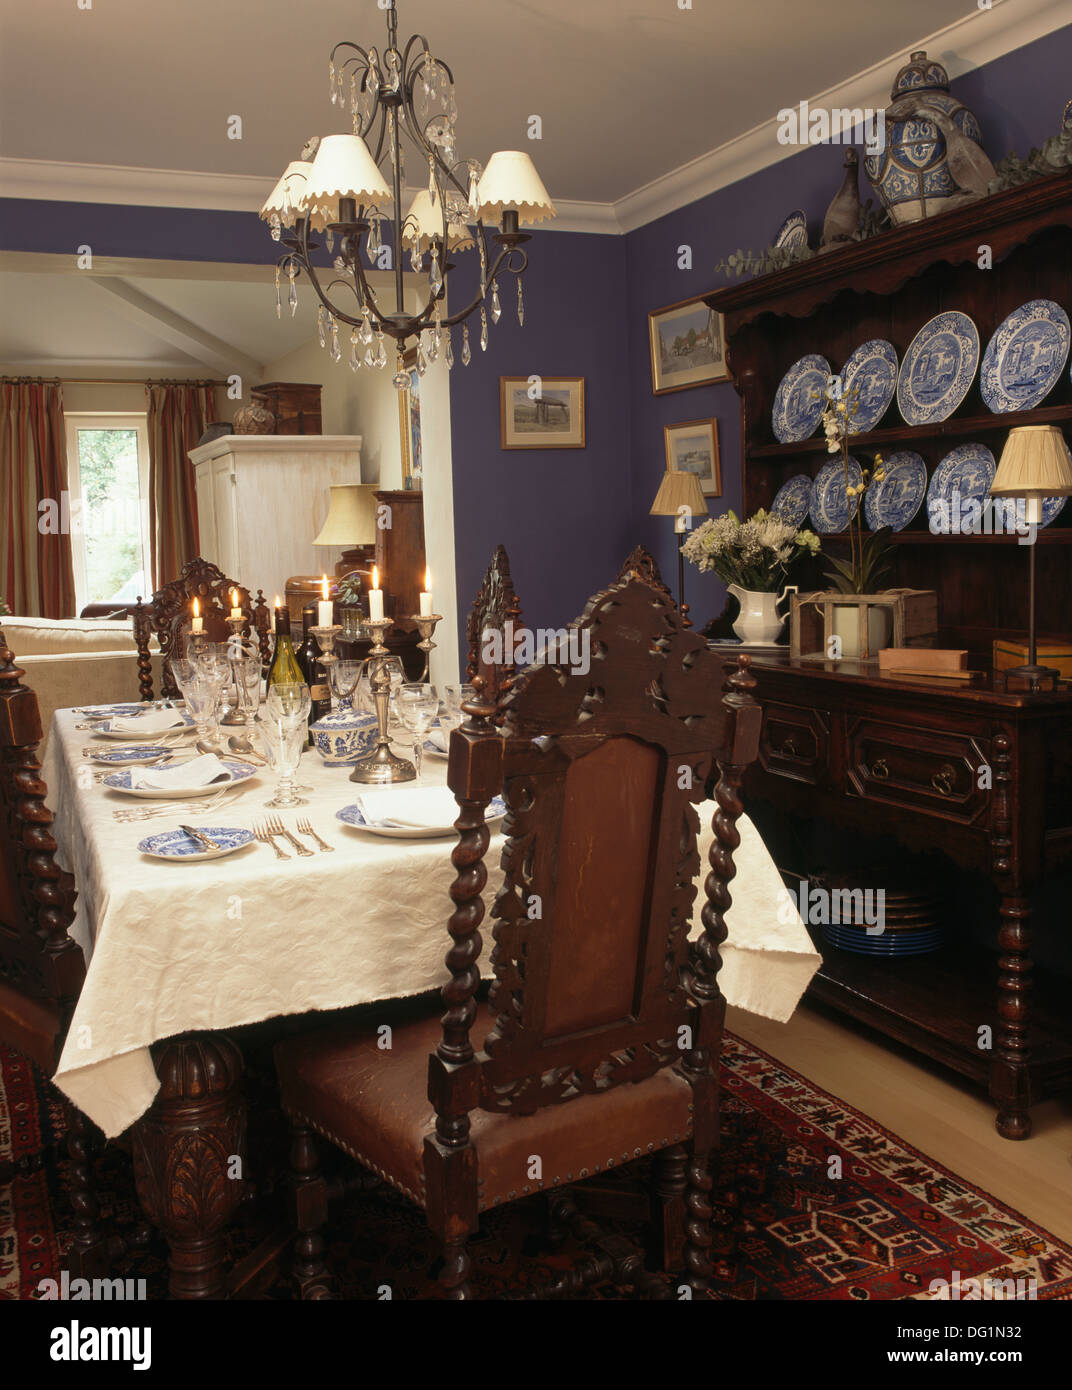 Antique Jacobean style chairs and oak dresser in blue dining room with chandelier above table with white cloth laid Stock Photo